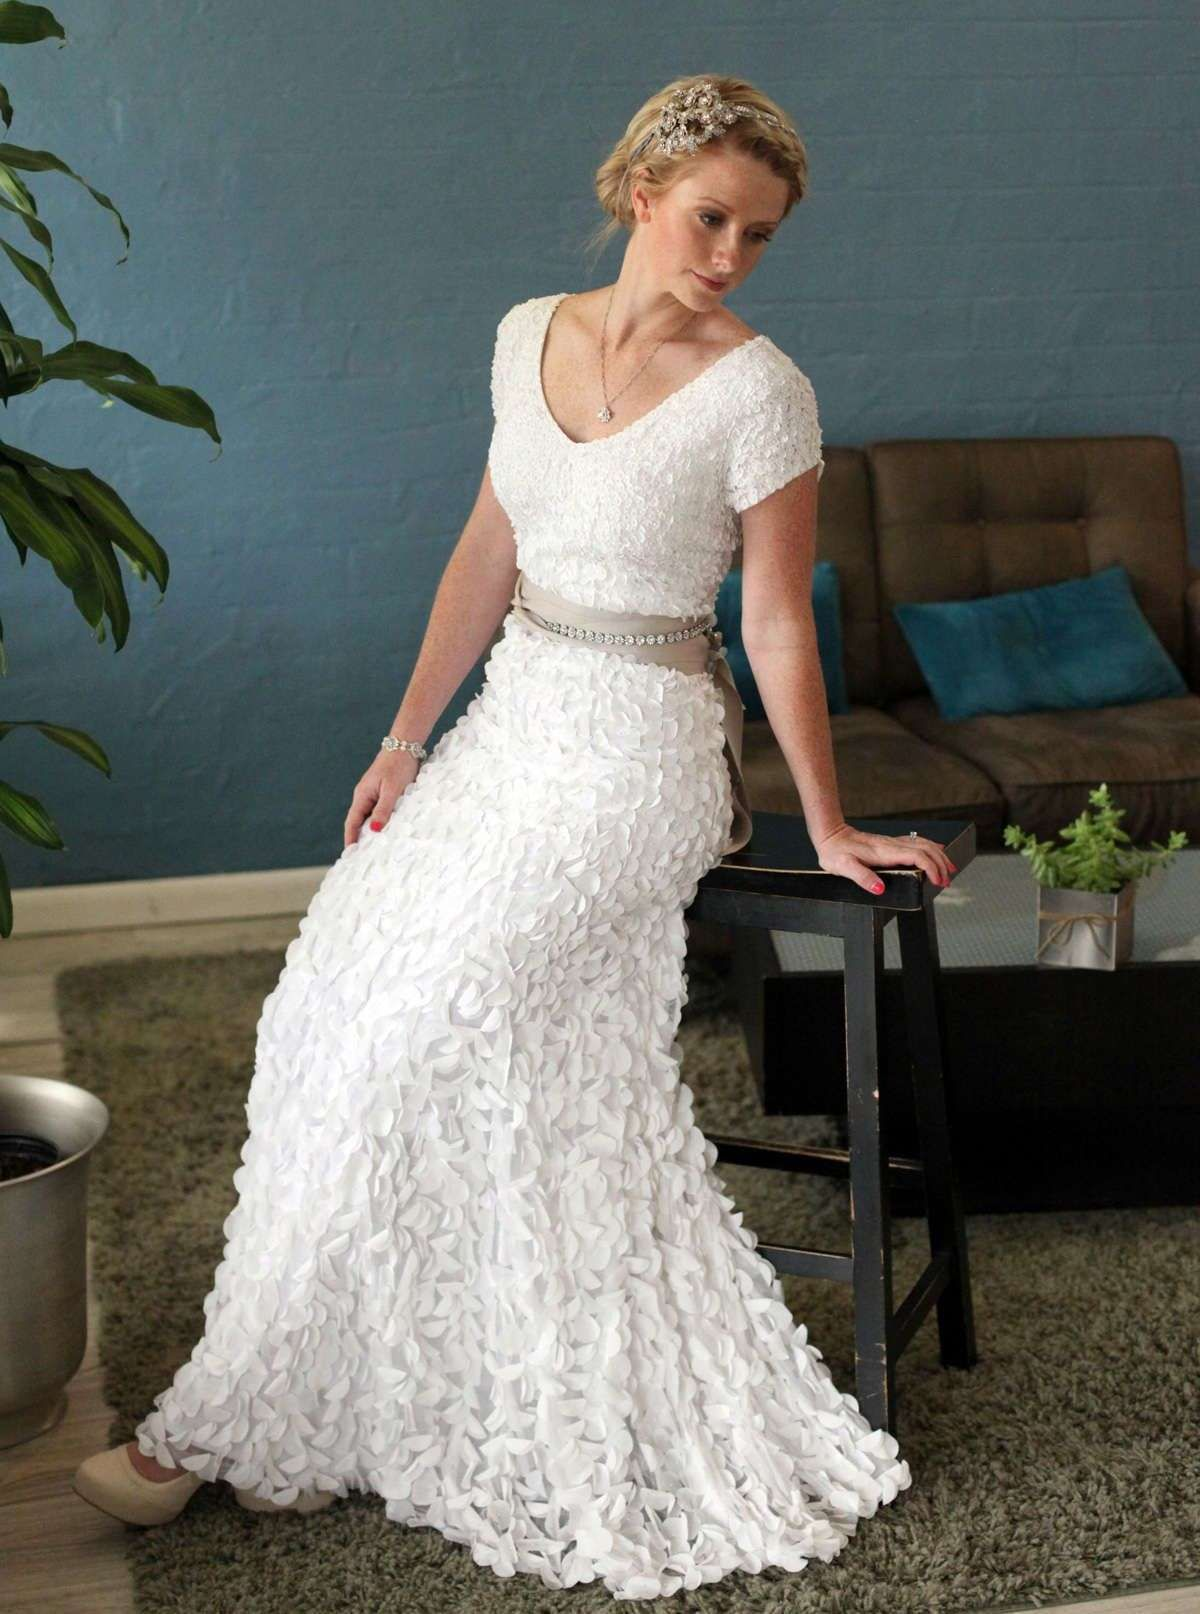 2nd wedding dresses older bride 1080p hd pictures for Wedding dresses for tall skinny brides